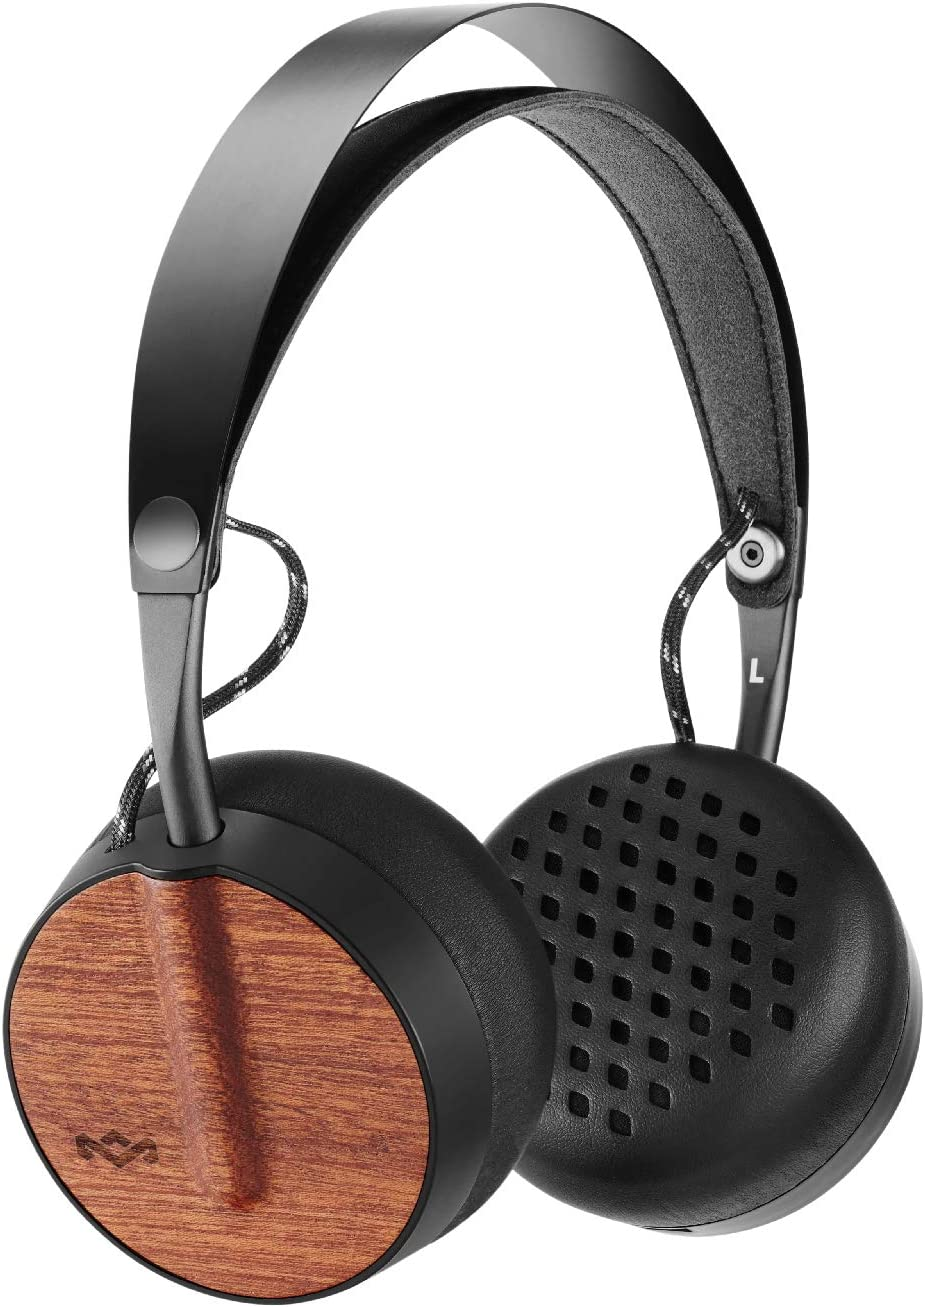 House of Marley Buffalo Soldier Bluetooth Over Ear Headphones with a Microphone, Black